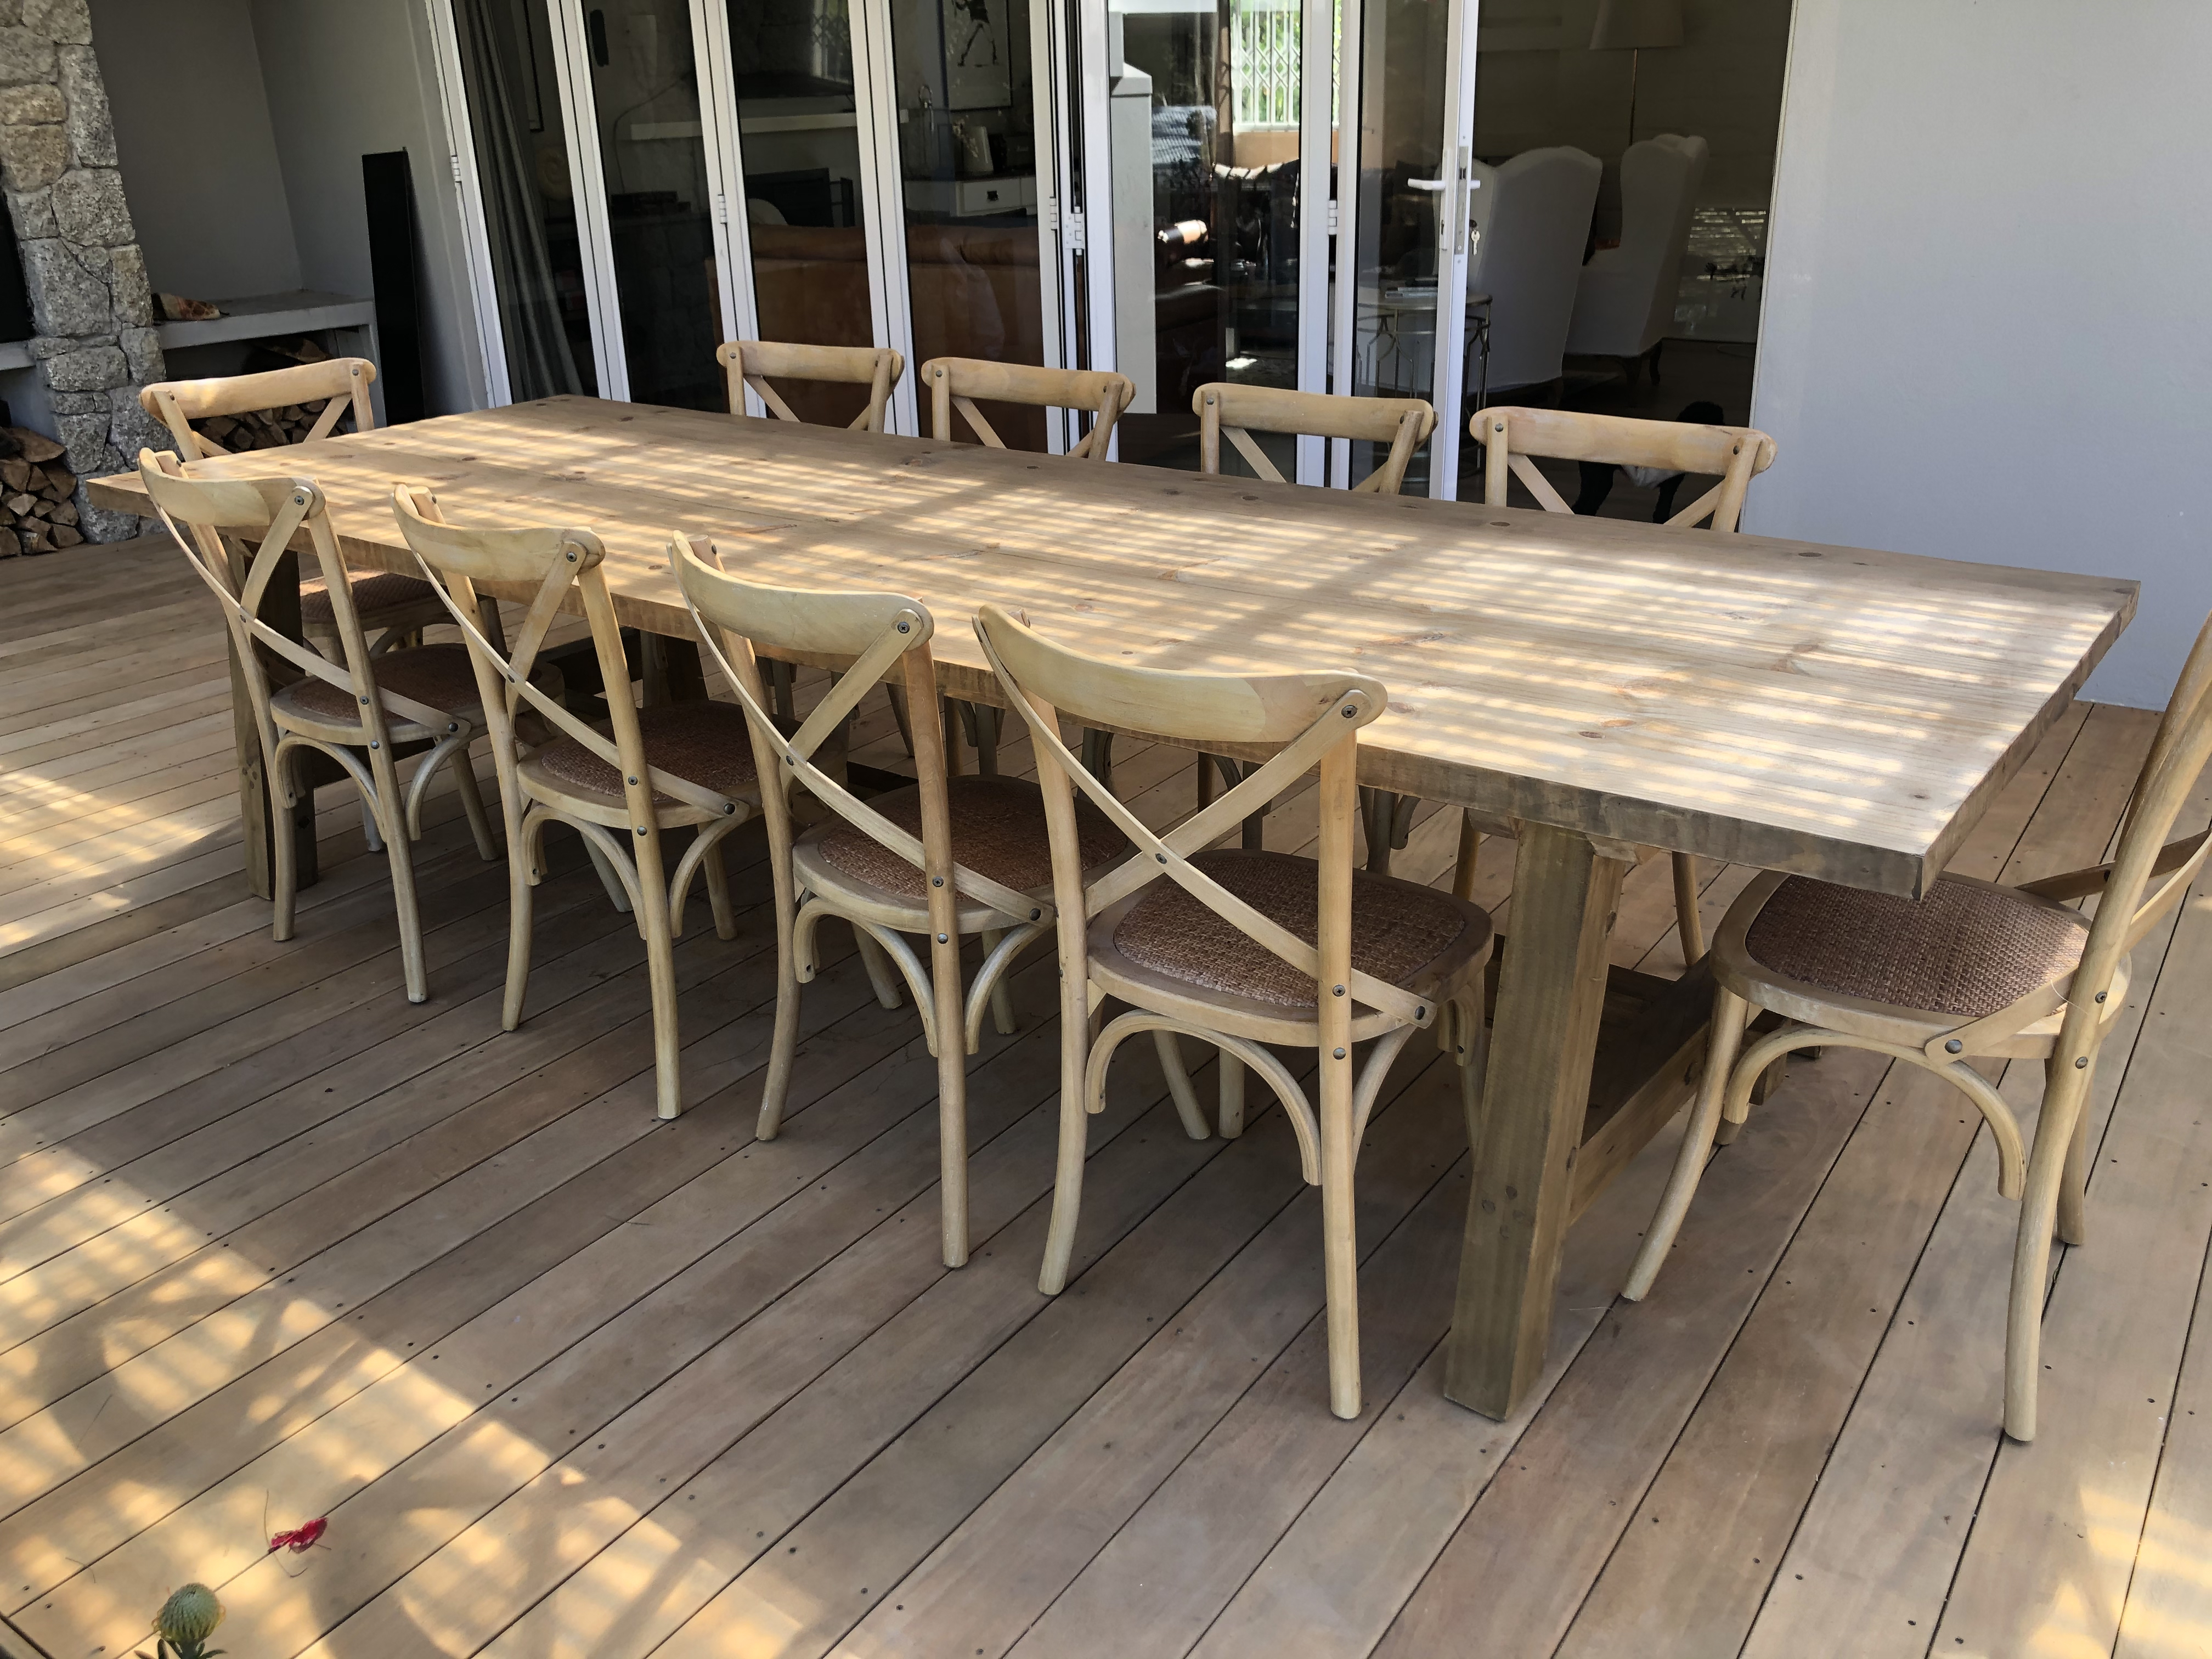 Outdoor industrial pine table